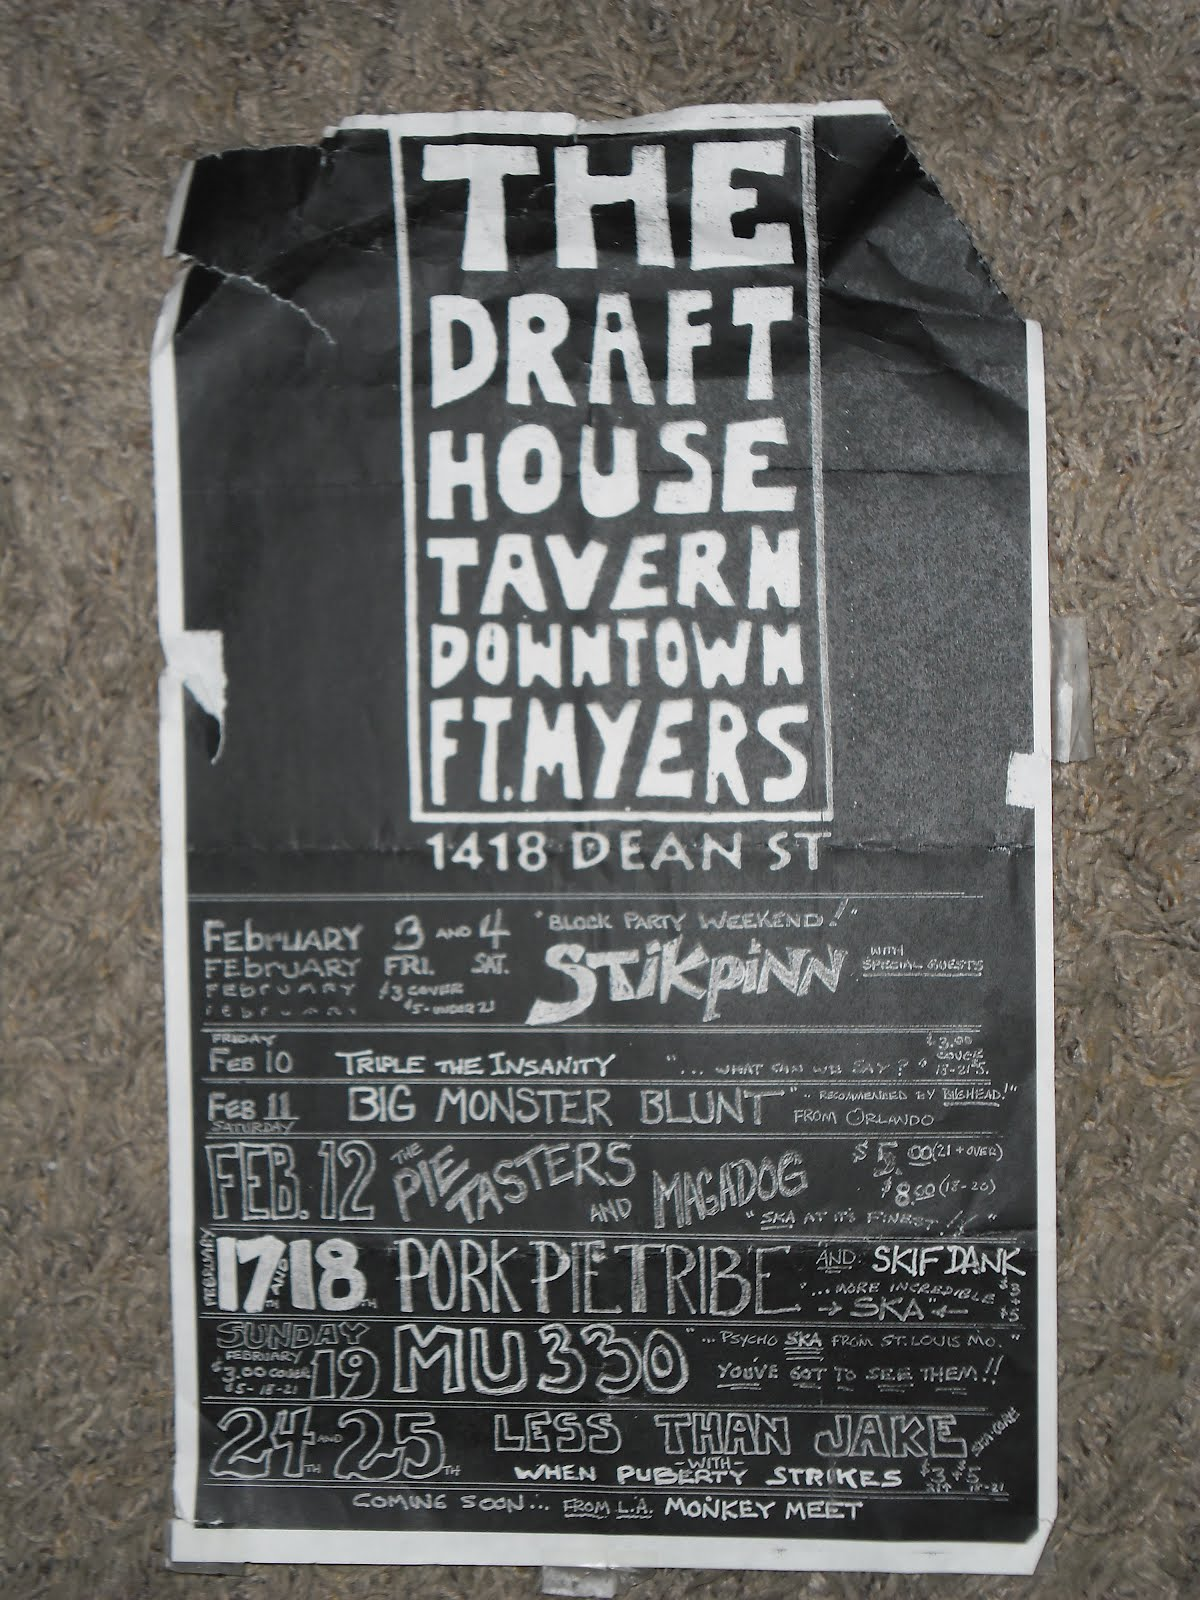 FLYERS FROM MIAMI (The Cameo Theatre!!) AND FT. MYERS ,FLORIDA (The Draft ...